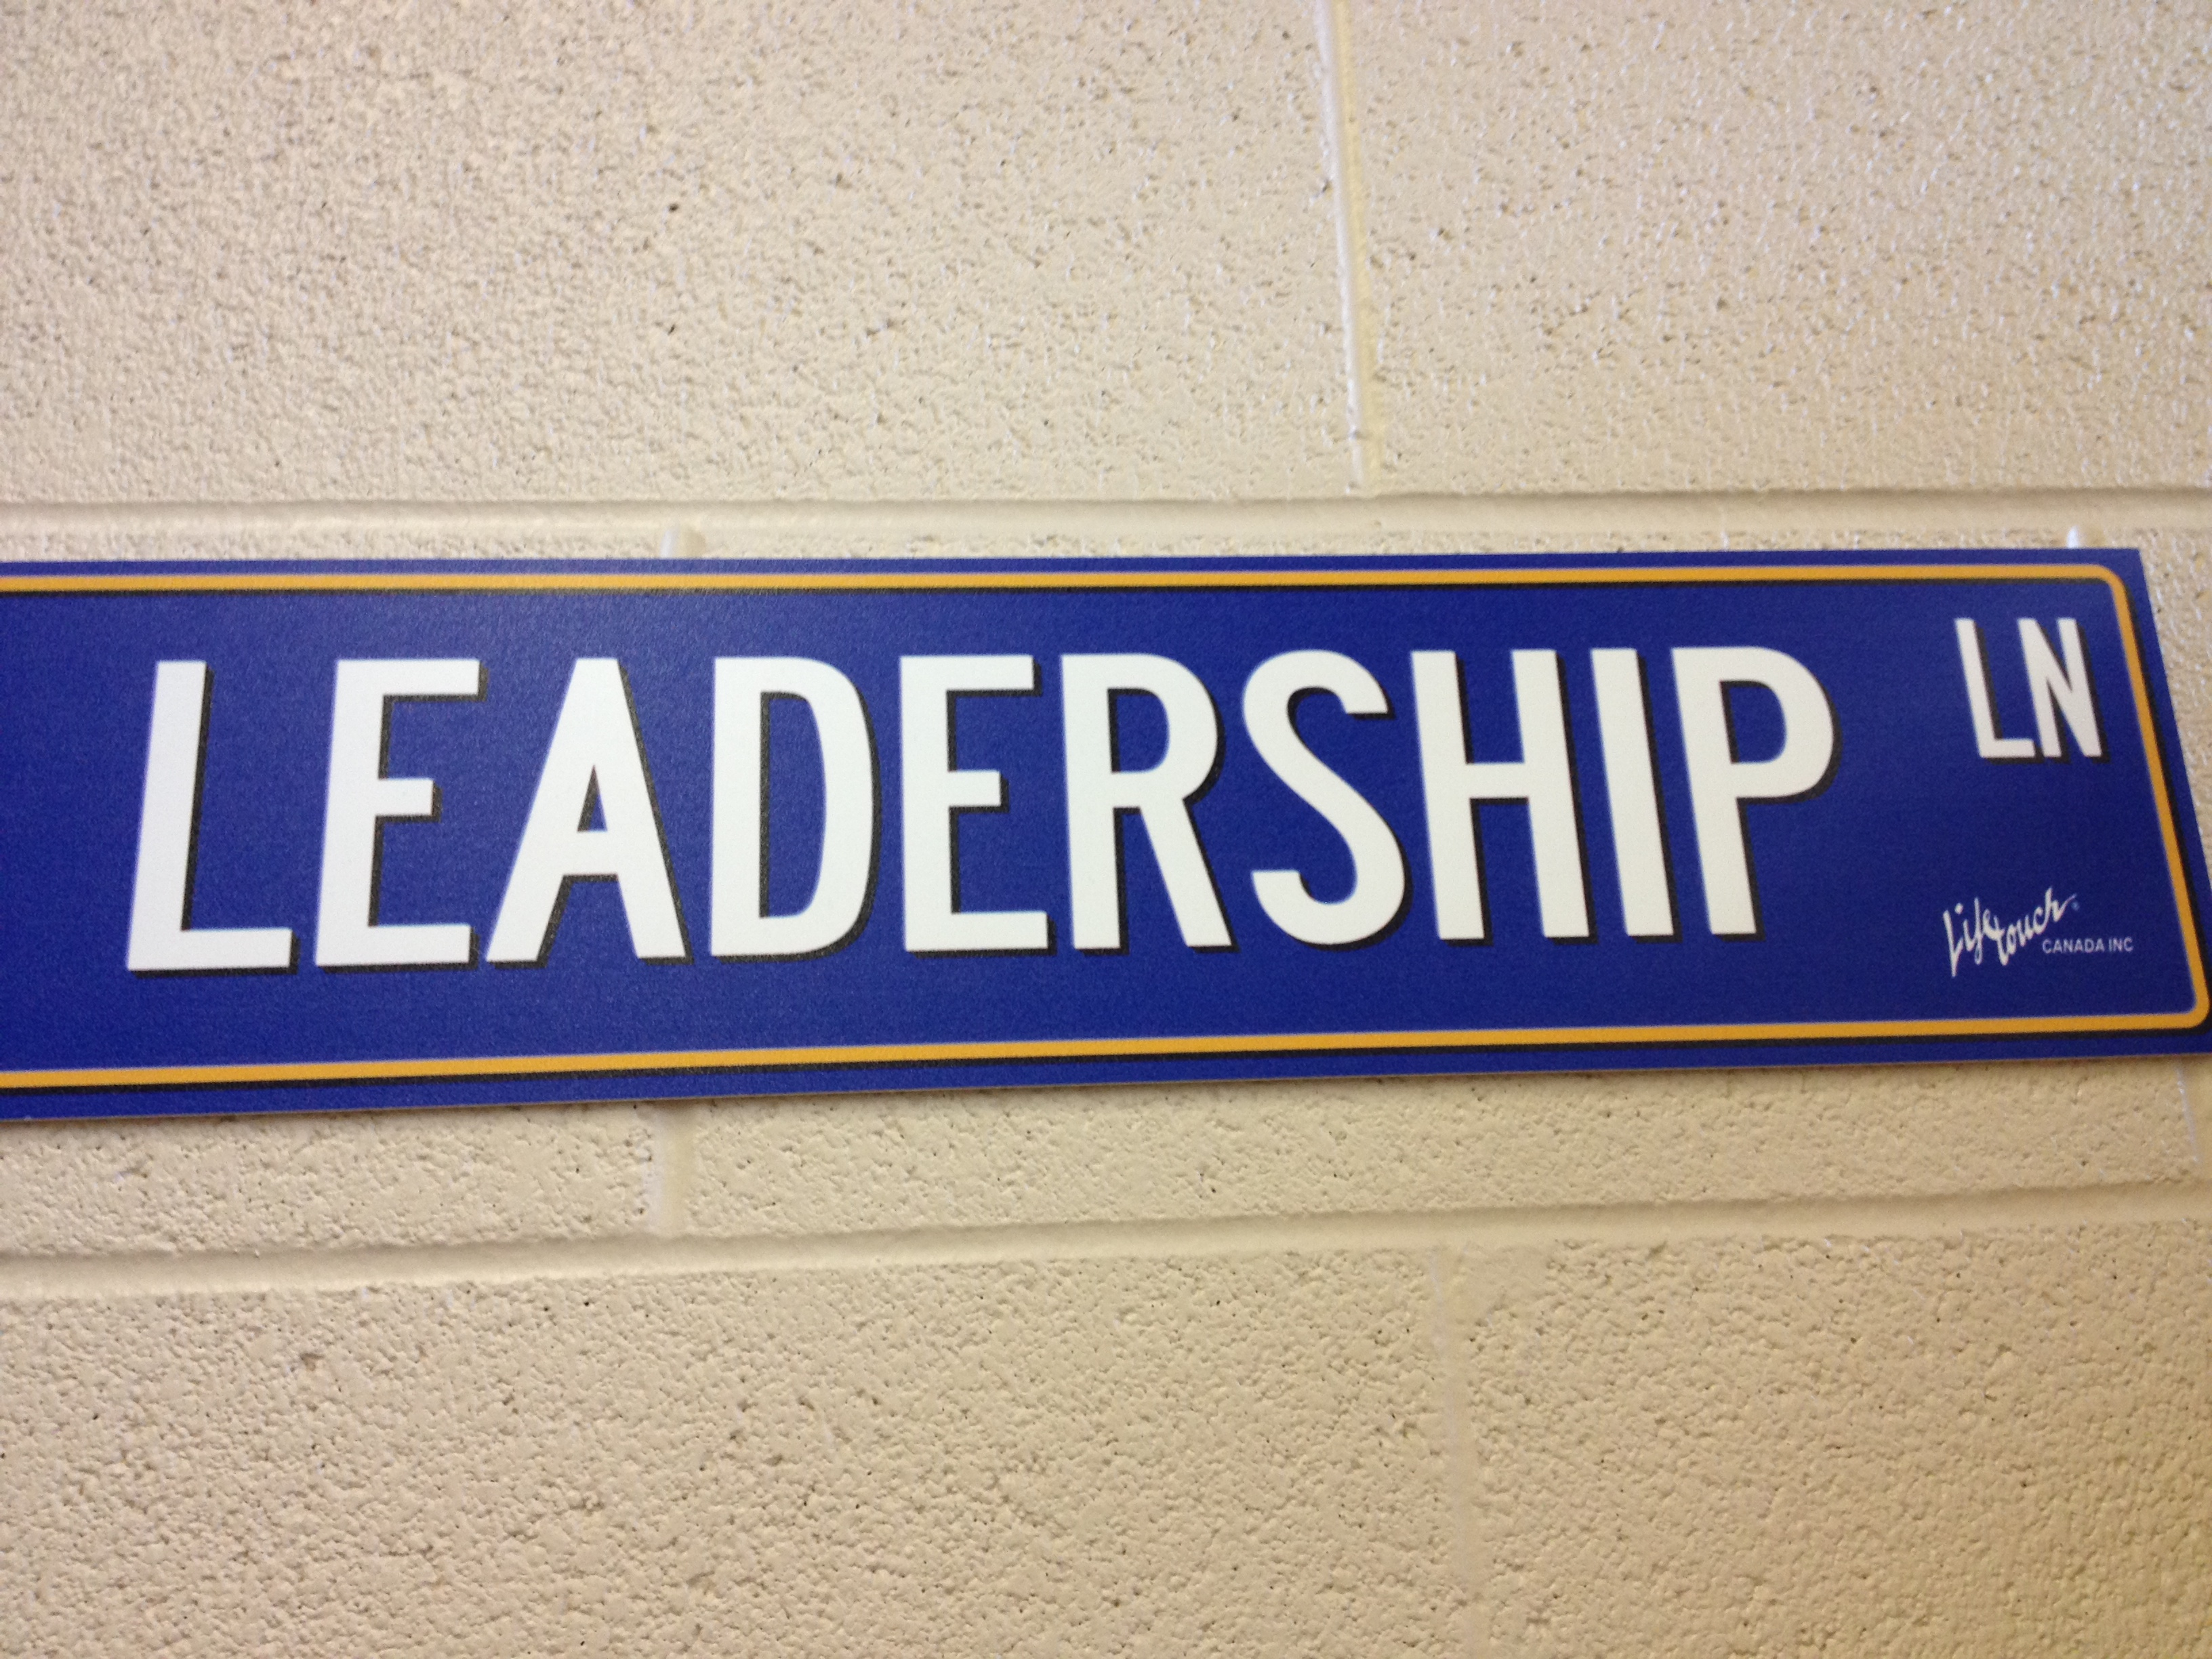 leadership pictures - photo #13